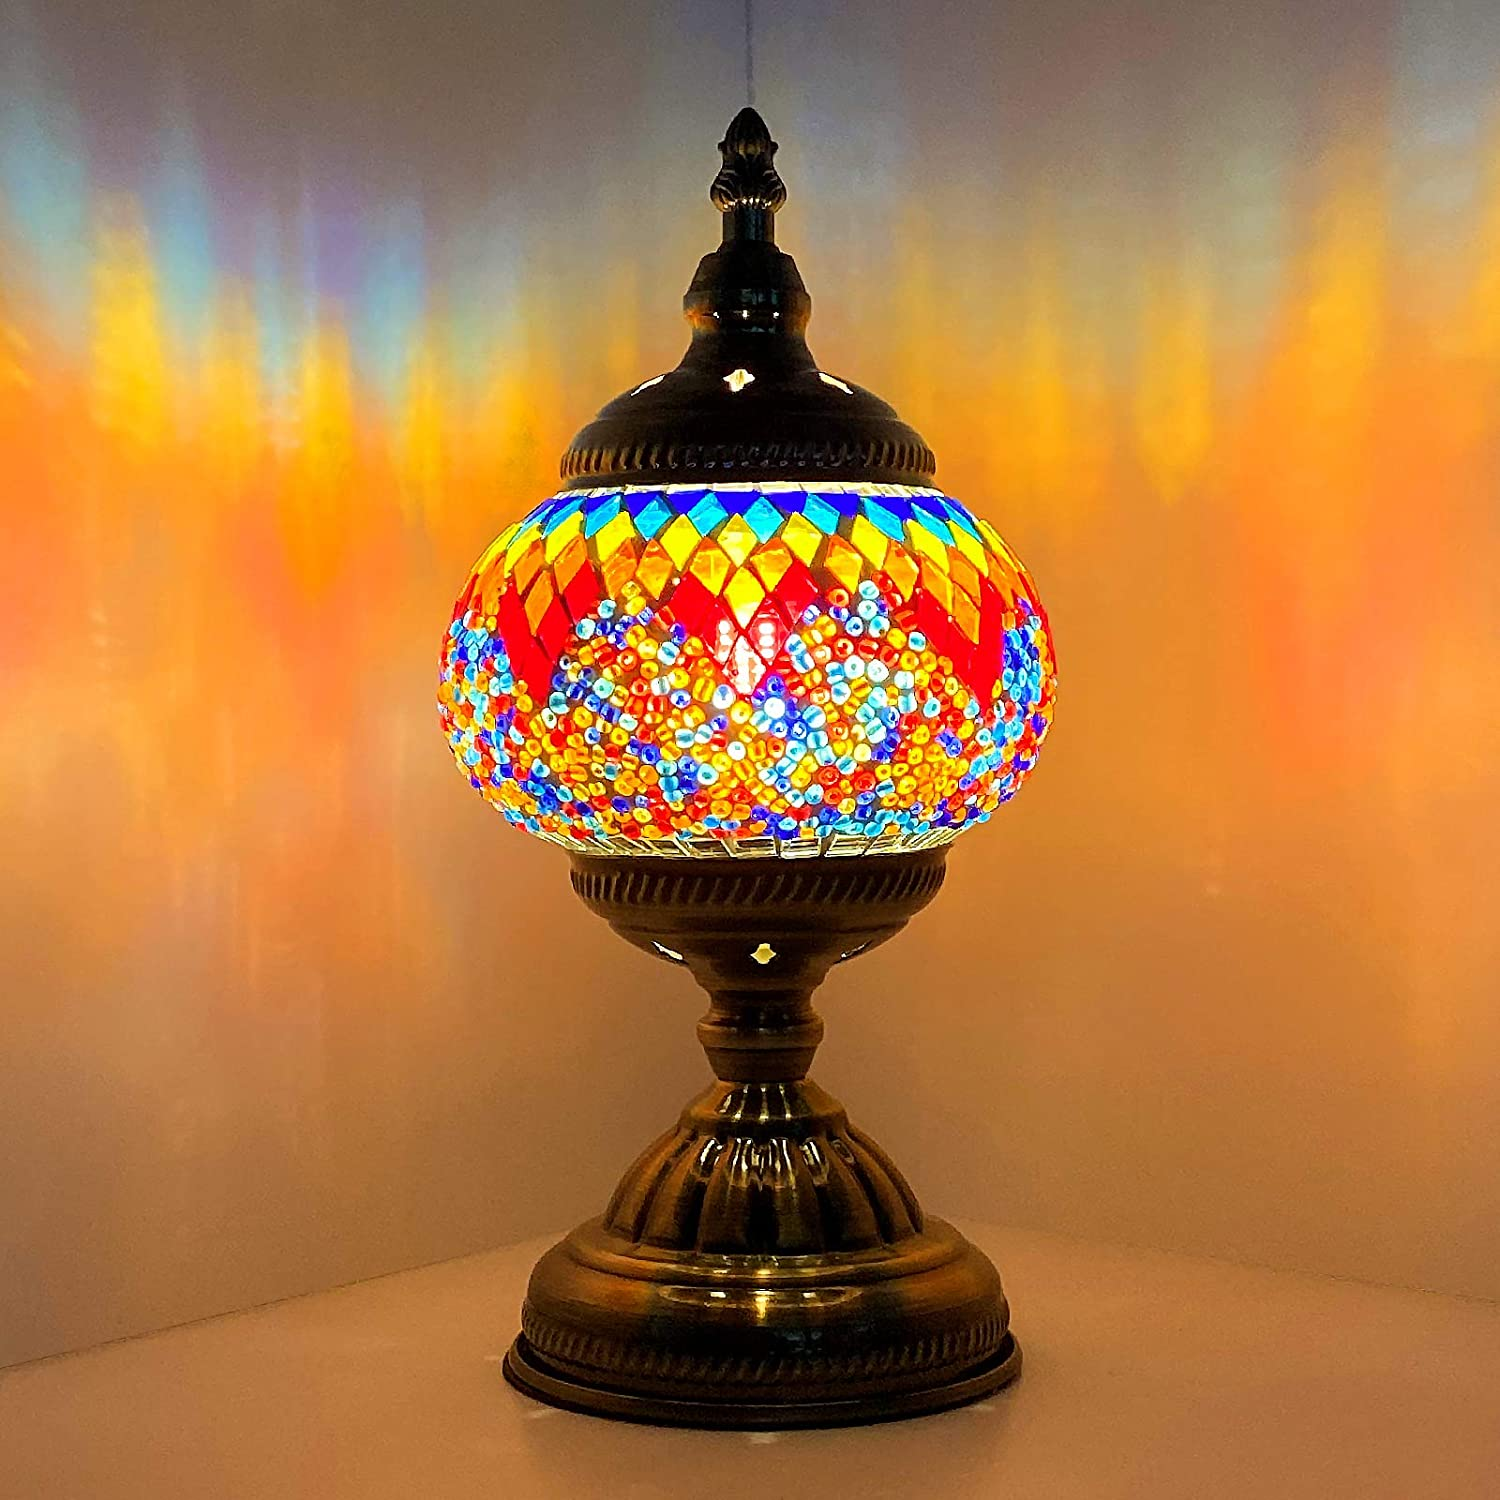 Marrakech Turkish Table Lamp Classic Tiffany Vintage Safety and trust Mosai Over item handling ☆ Style